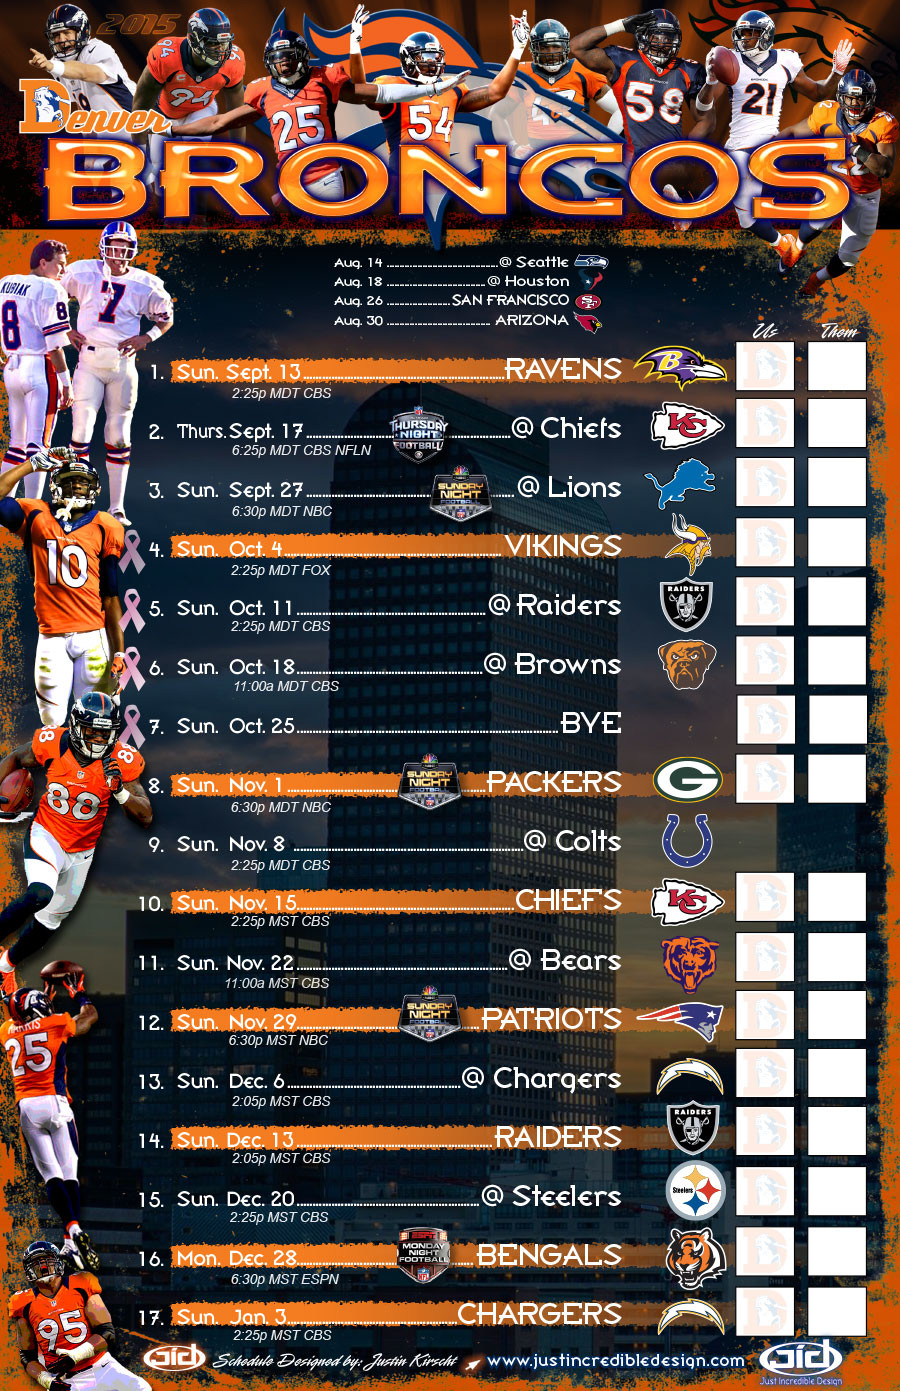 Nfl Schedule Nfl Schedule Archives Just Incredible Design